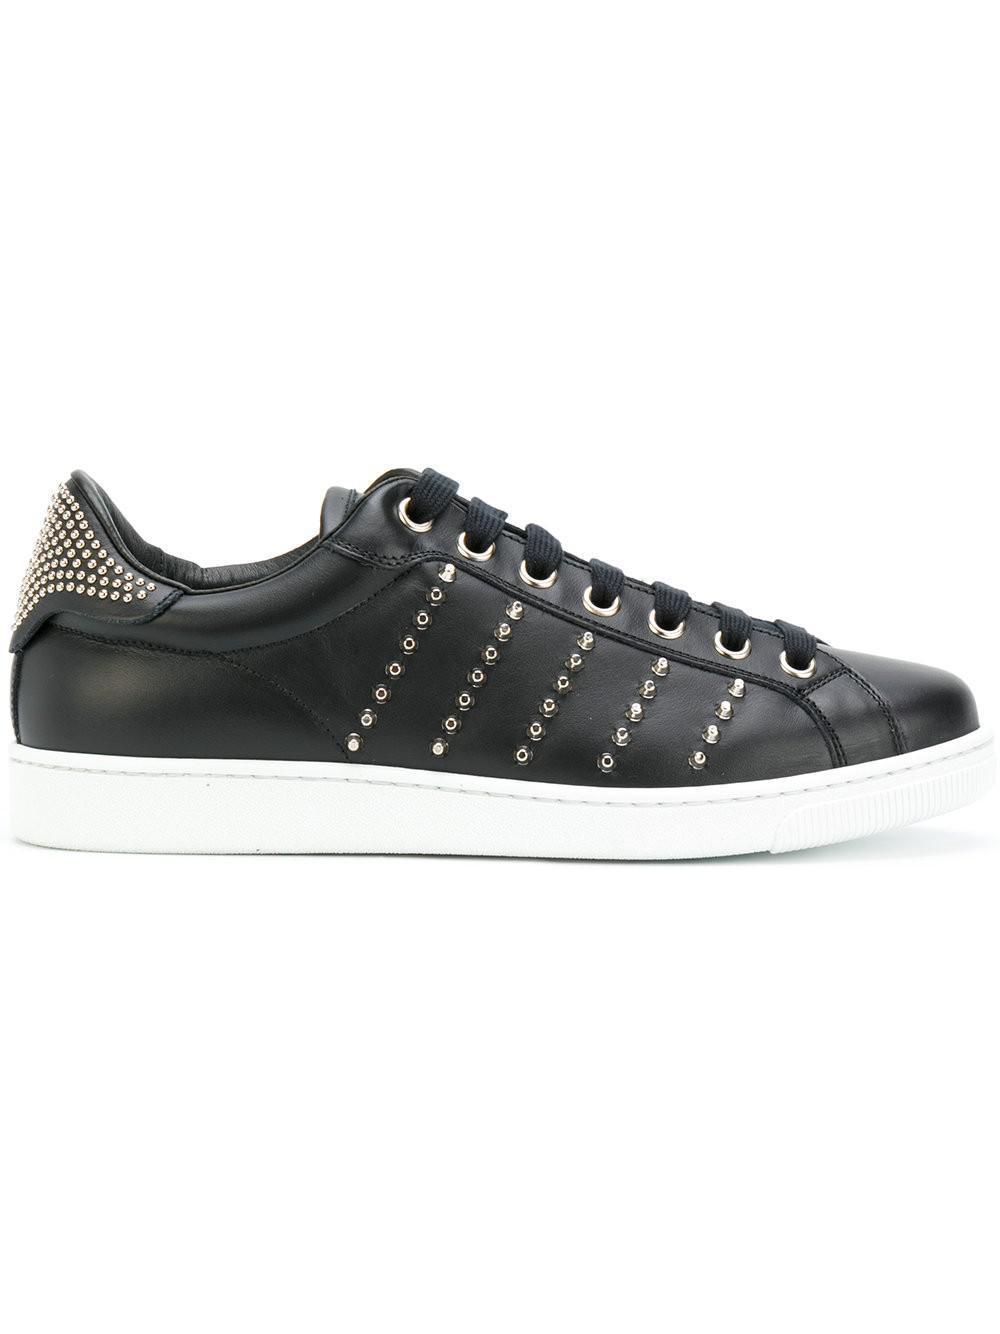 Paul Smith Tennis Shoes